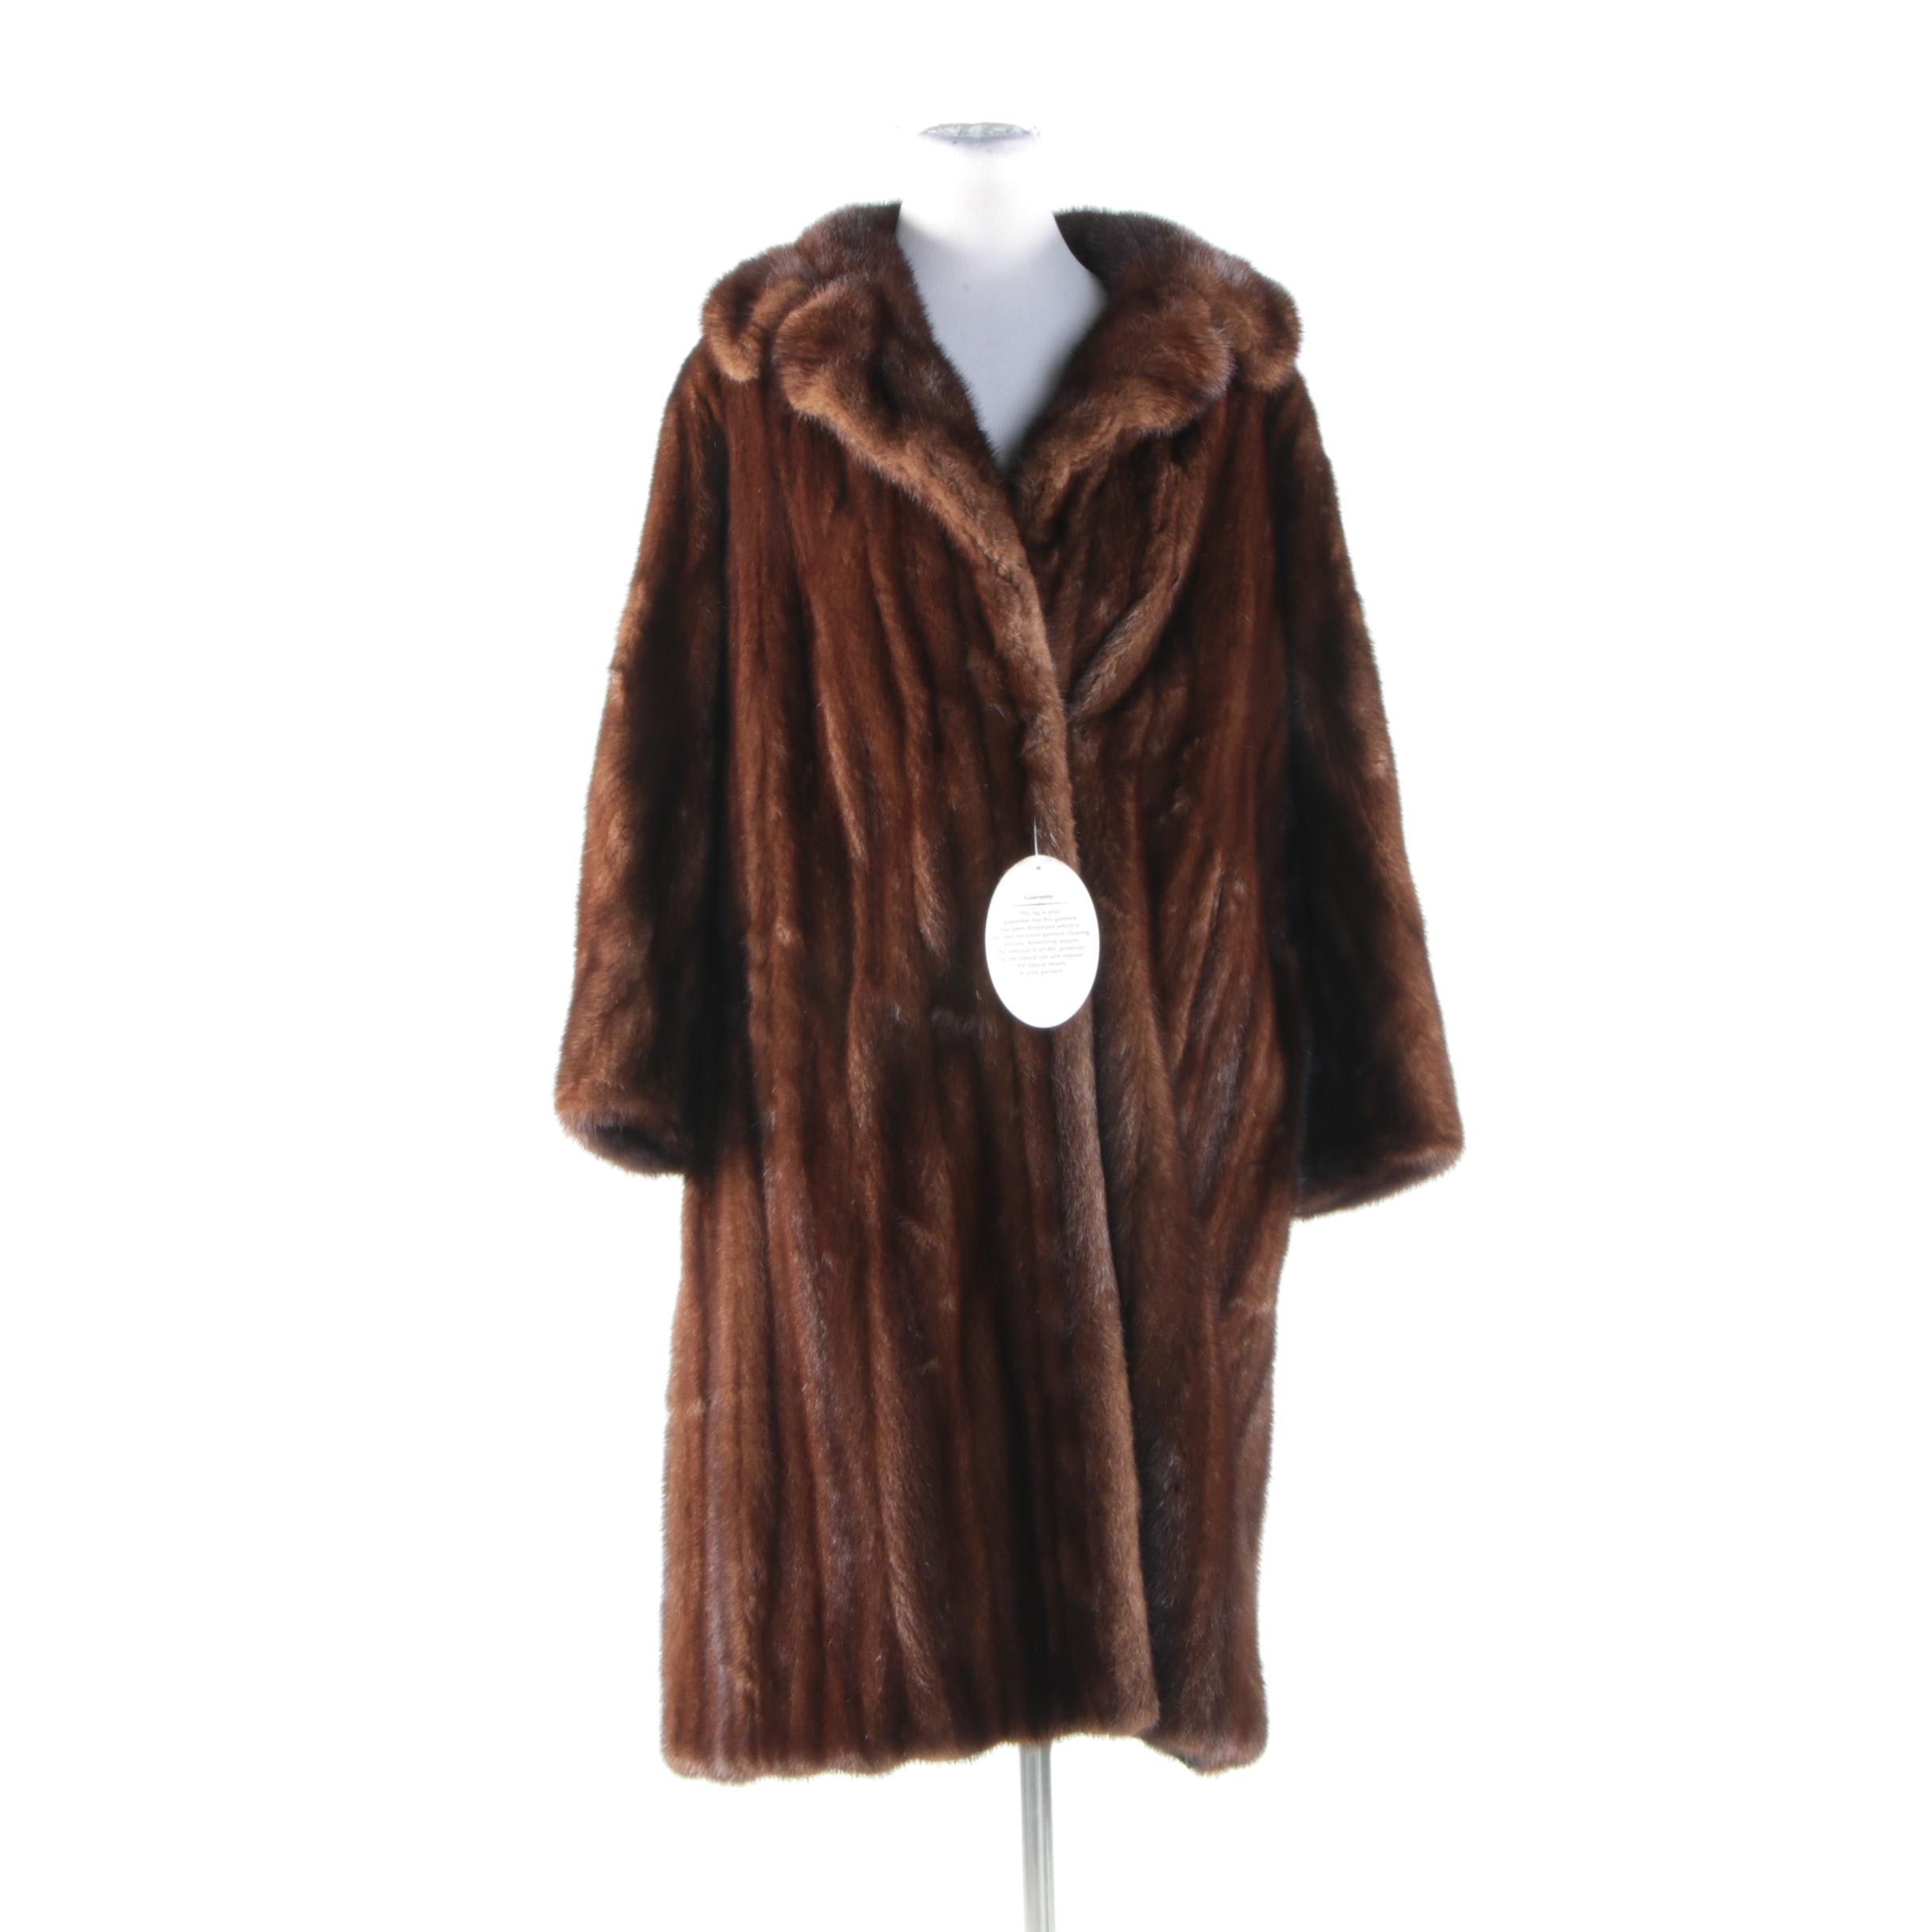 A. Dworkin Brown Mink Fur Coat